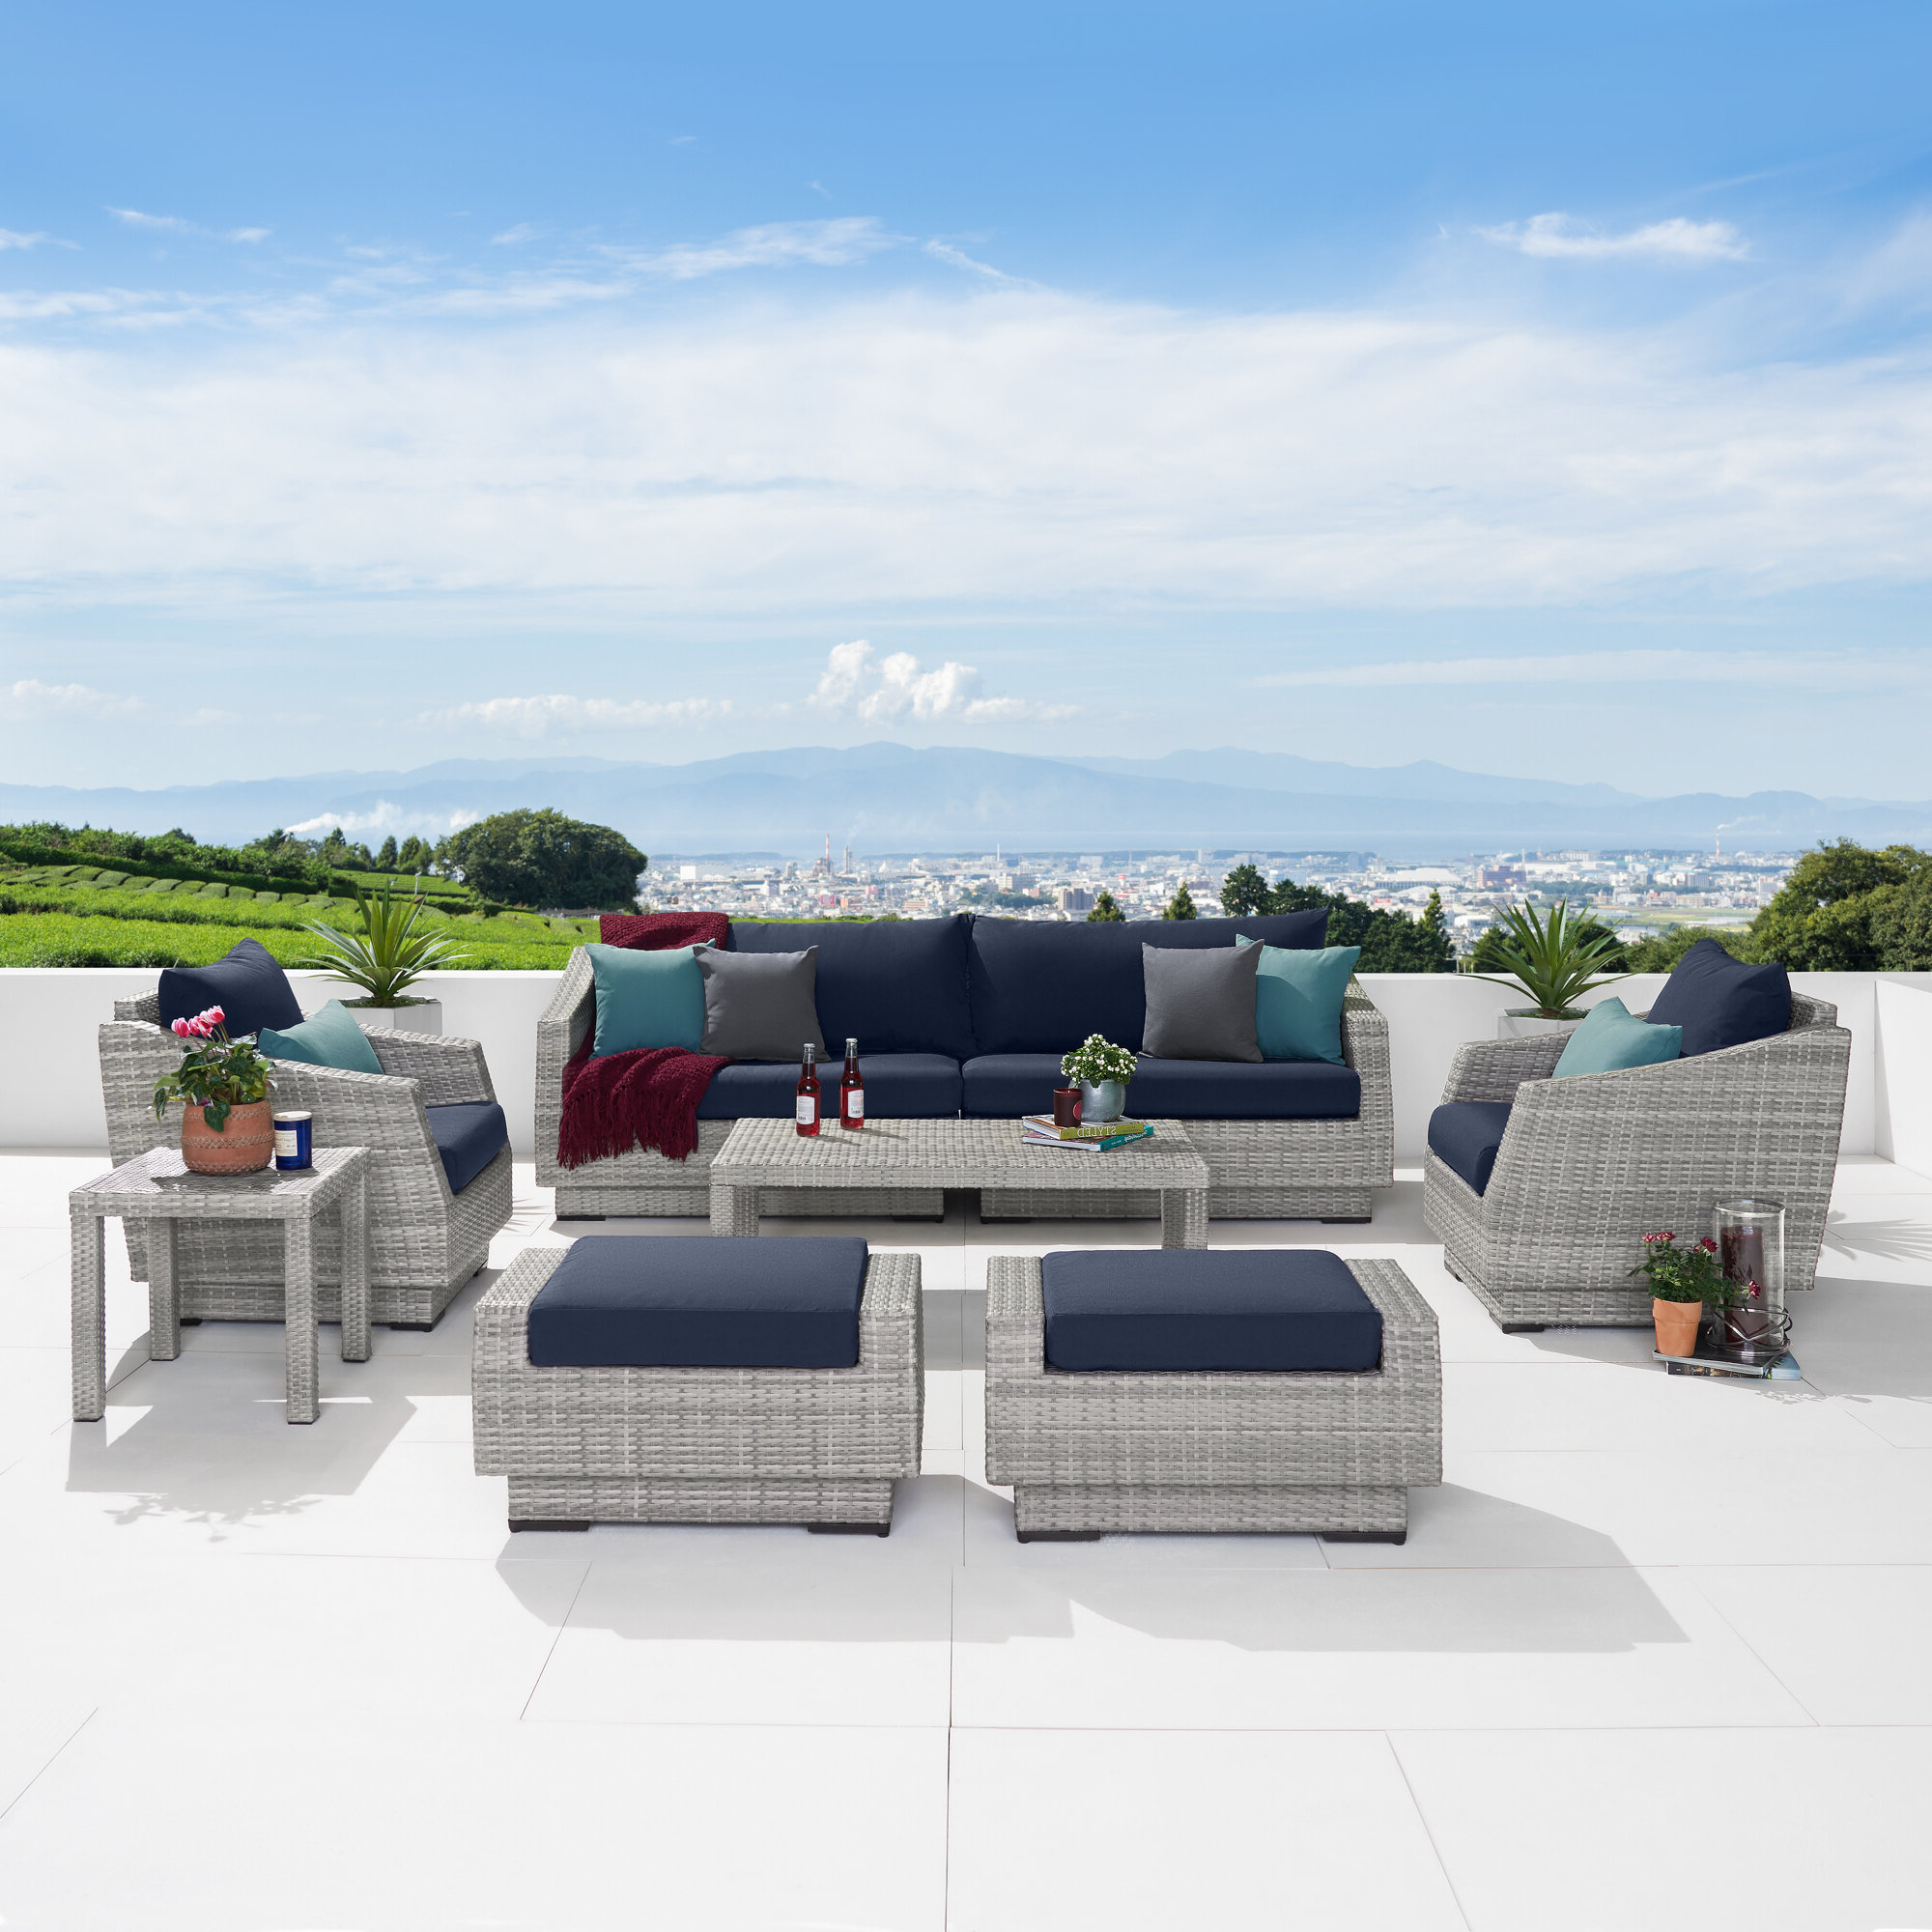 Castelli Patio Sofas With Sunbrella Cushions In 2019 Castelli 8 Piece Rattan Sofa Seating Group With Cushions (View 6 of 20)